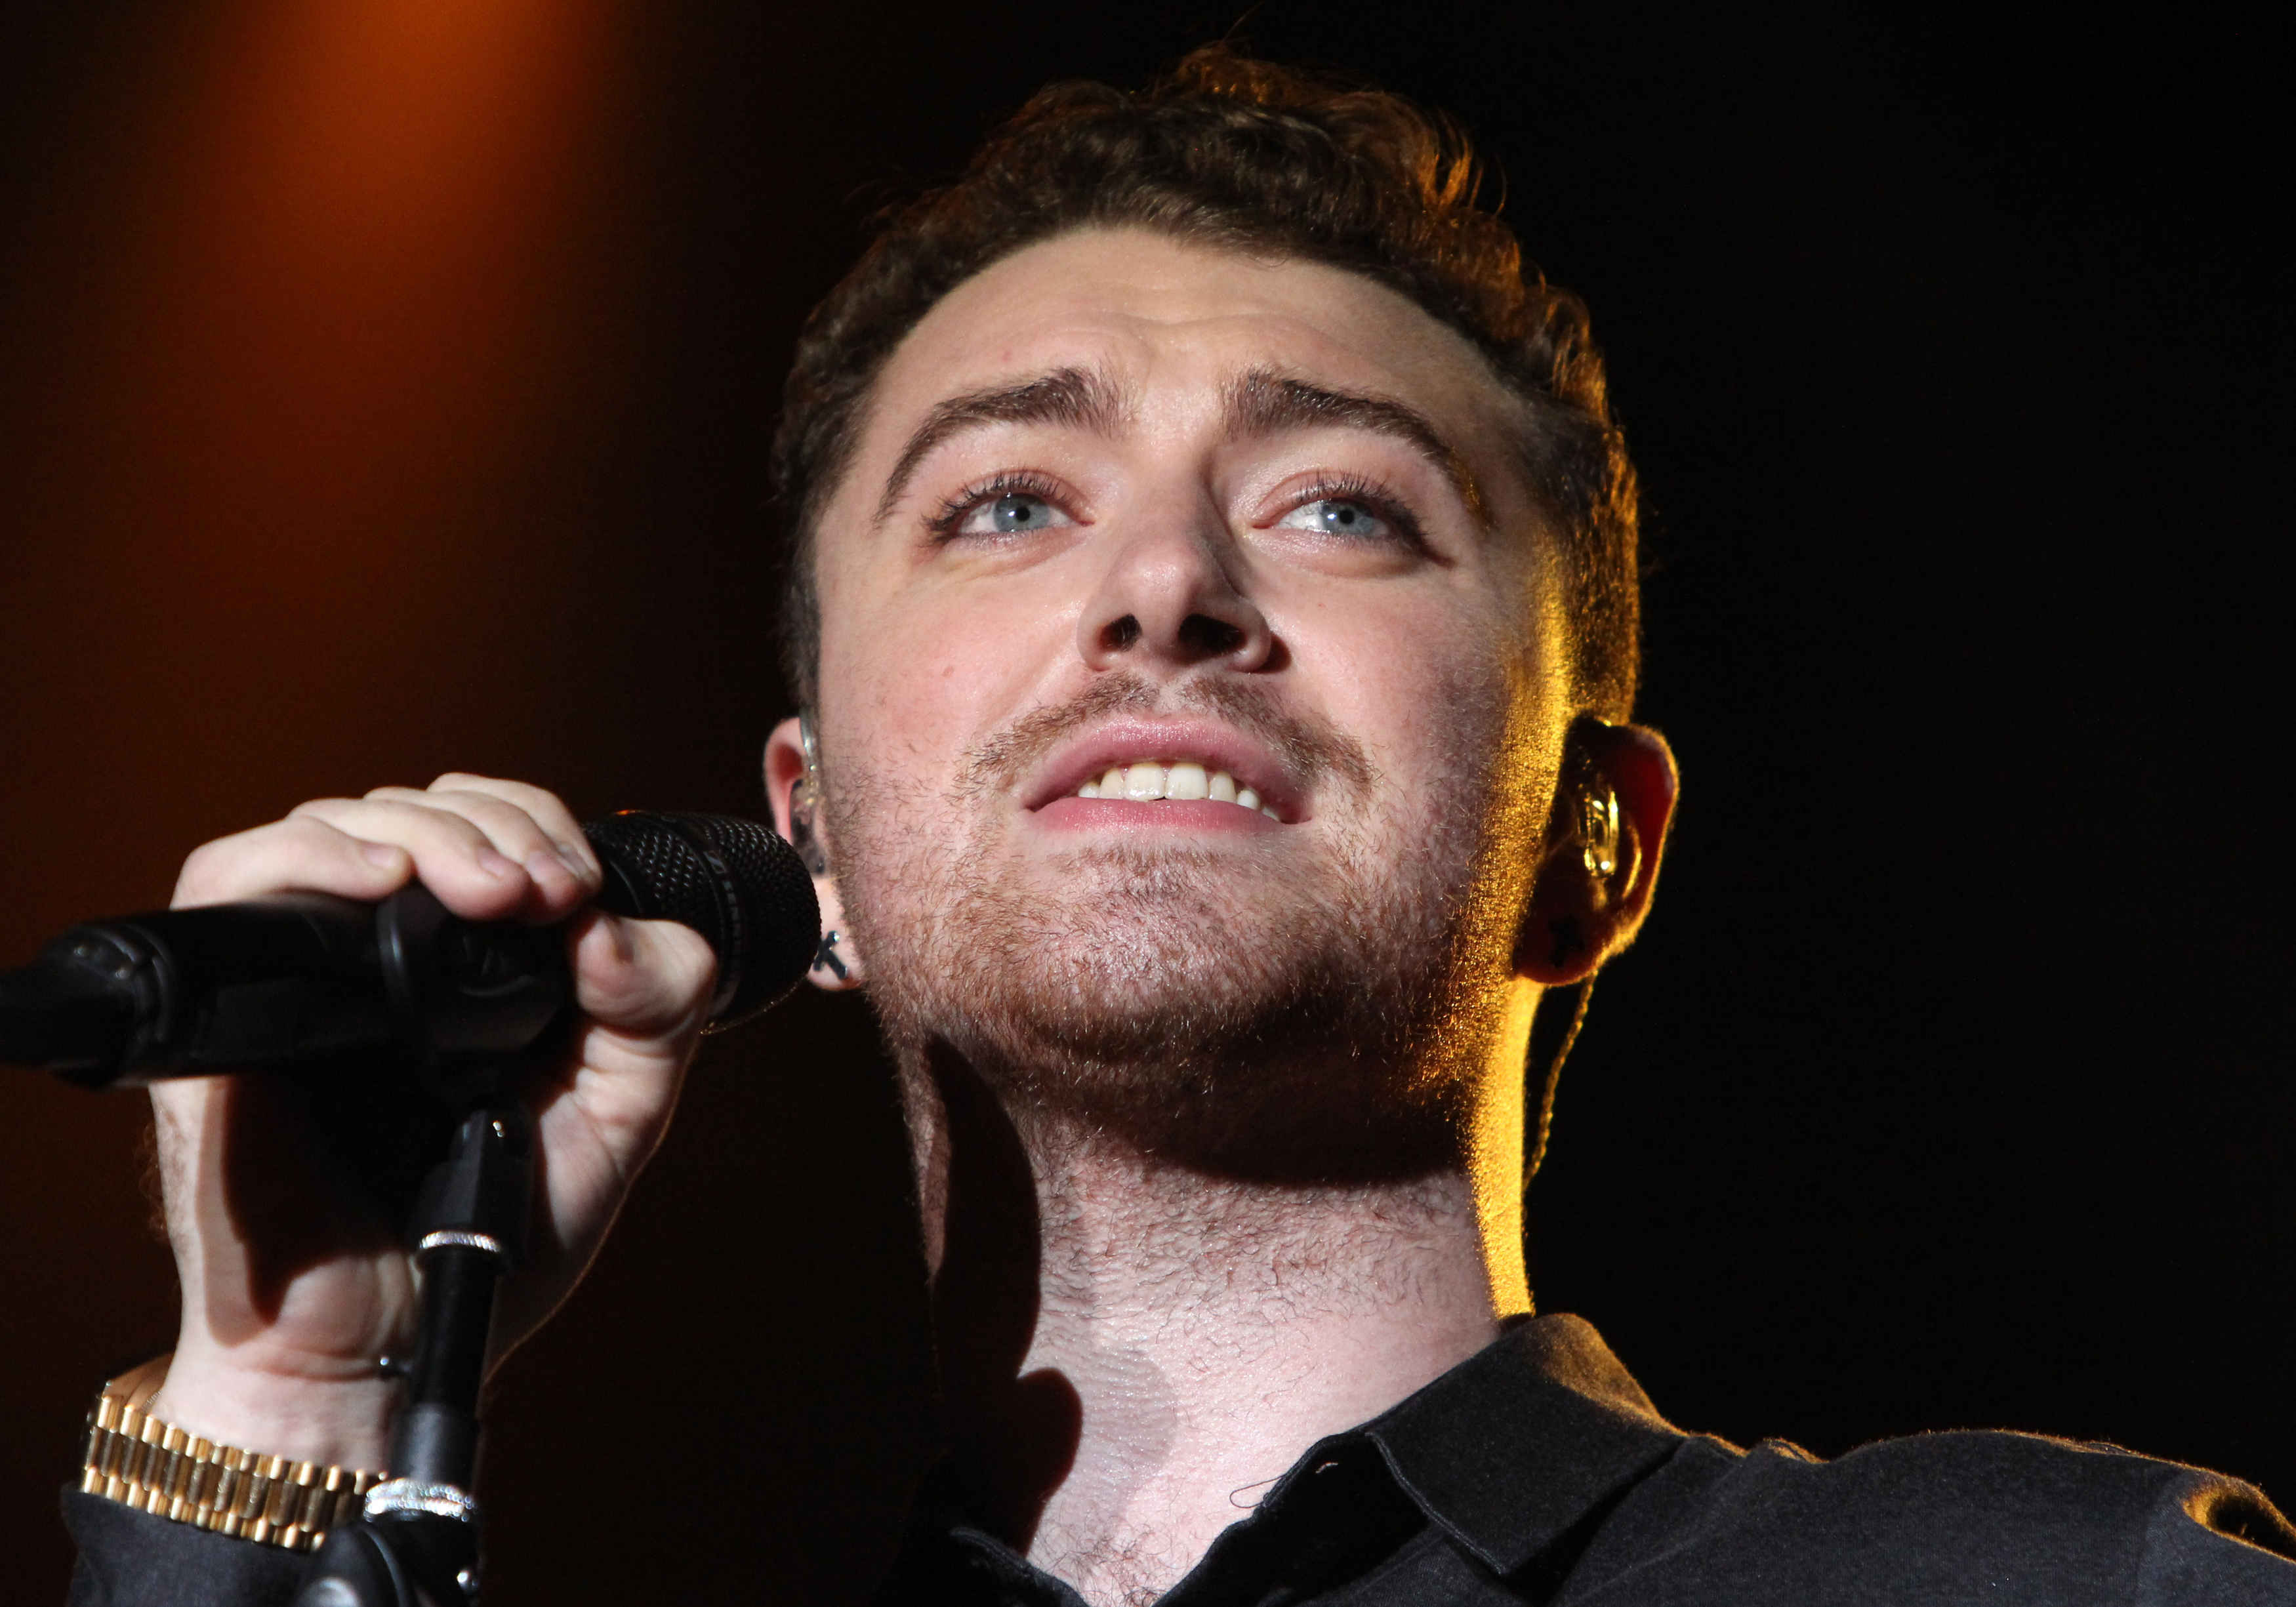 Sam Smith Announces Album Release & US Tour Dates